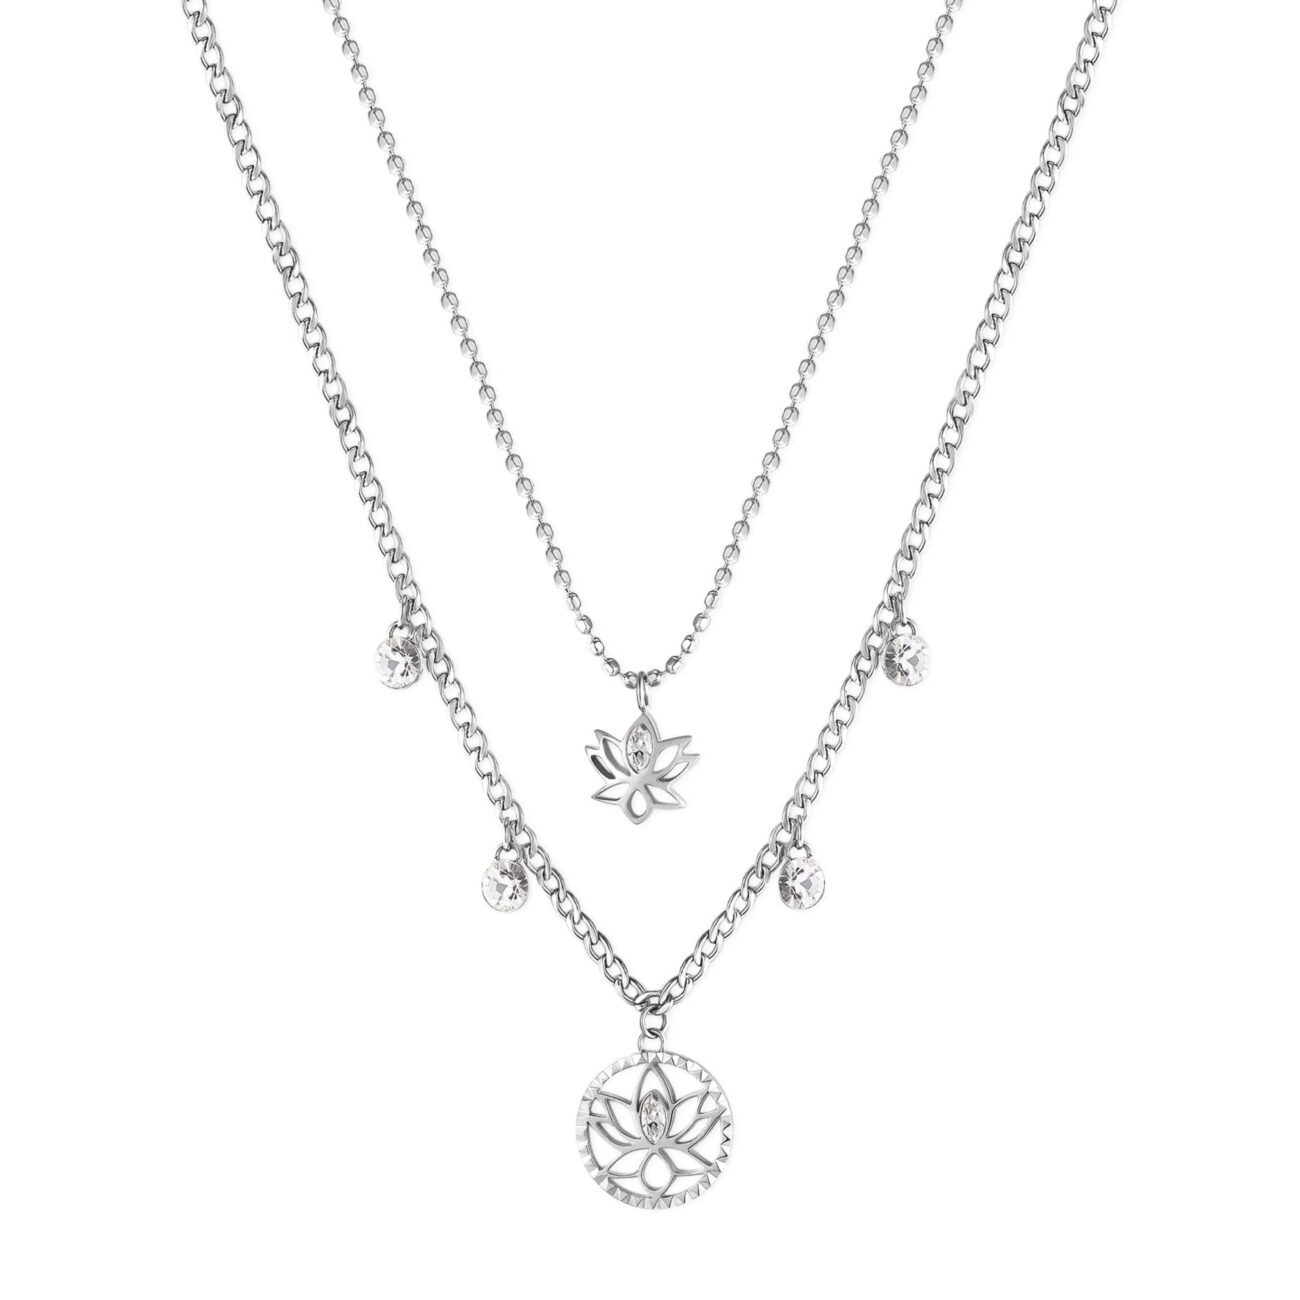 LOTUS FLOWER: REBIRTH, STRENGTH, BEAUTYThe lotus flower means new beginning, the end of an era and the rebirth, a redemption based on strength and perseverance. It is the symbol of elegance, beauty and purity.316L stainless steel double necklace with lotus flower pendants and crystals.